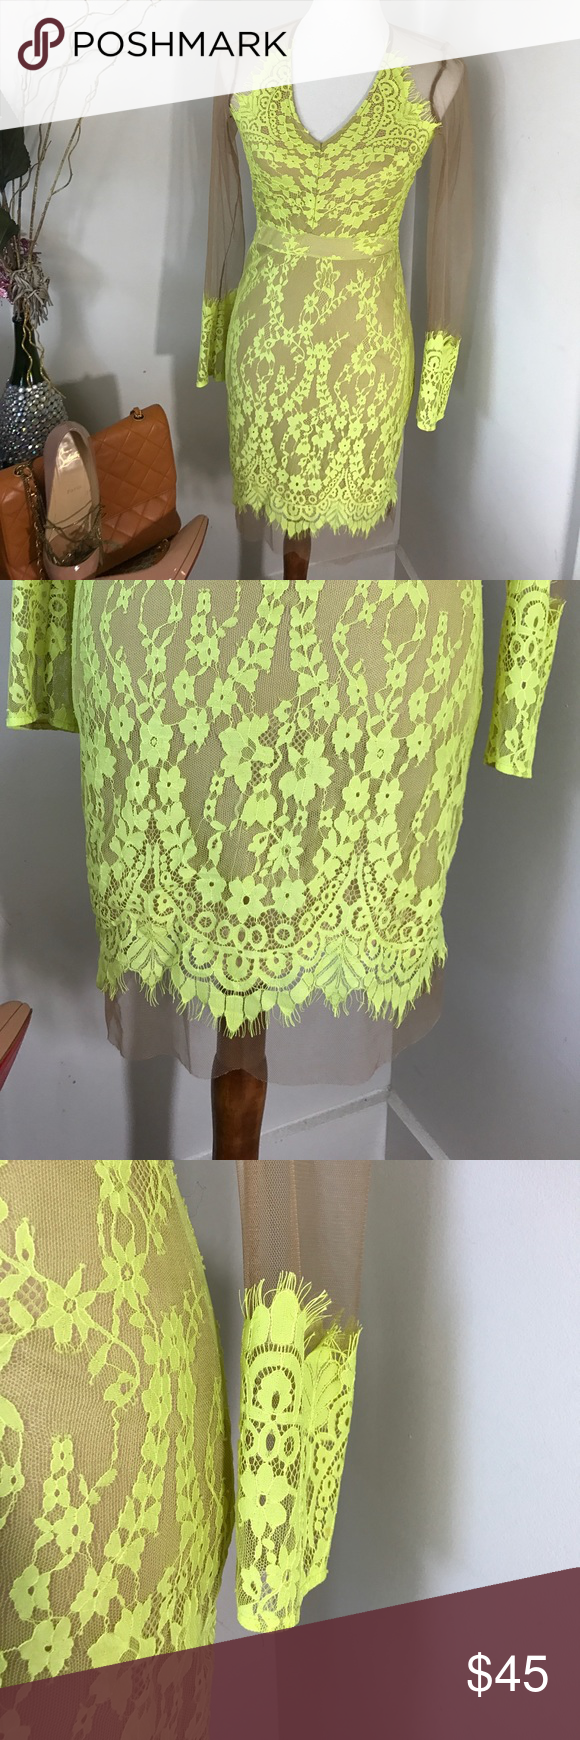 Sexy neon green/yellow mesh see-through lace dress Very sexy never worn just without tags Dresses Midi